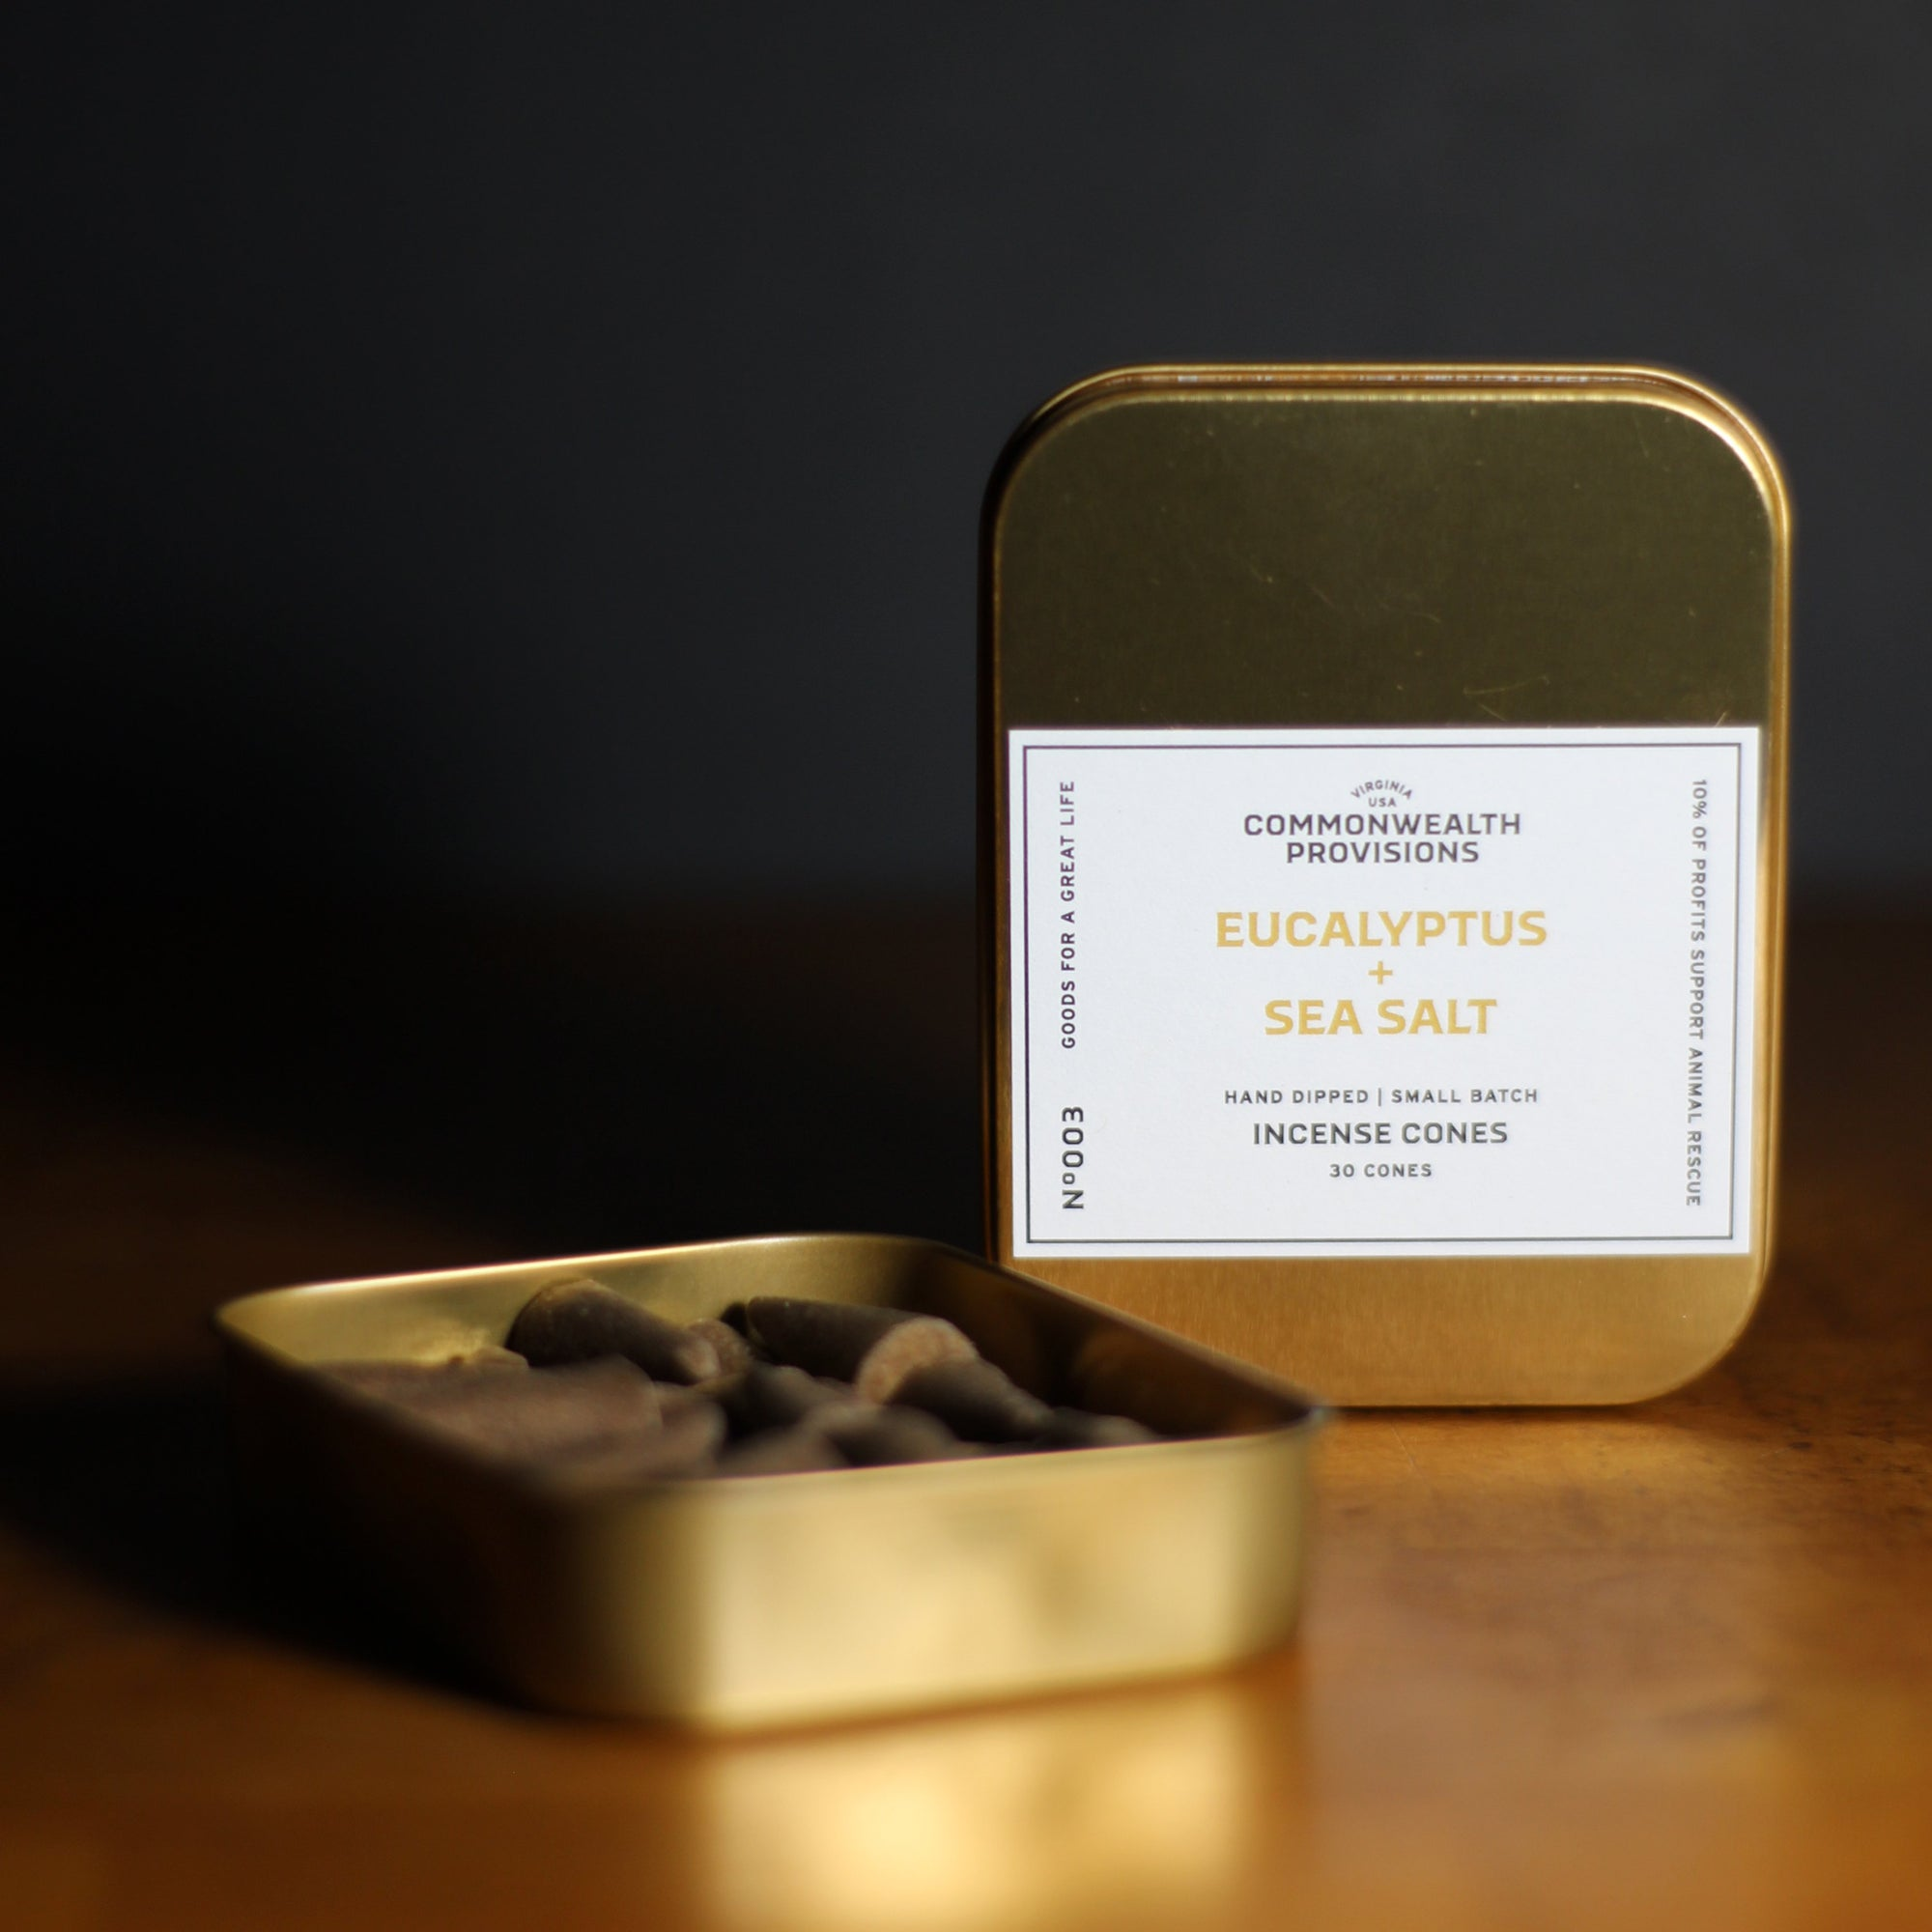 Commonwealth Provisions Eucalyptus + Sea Salt Incense Cones